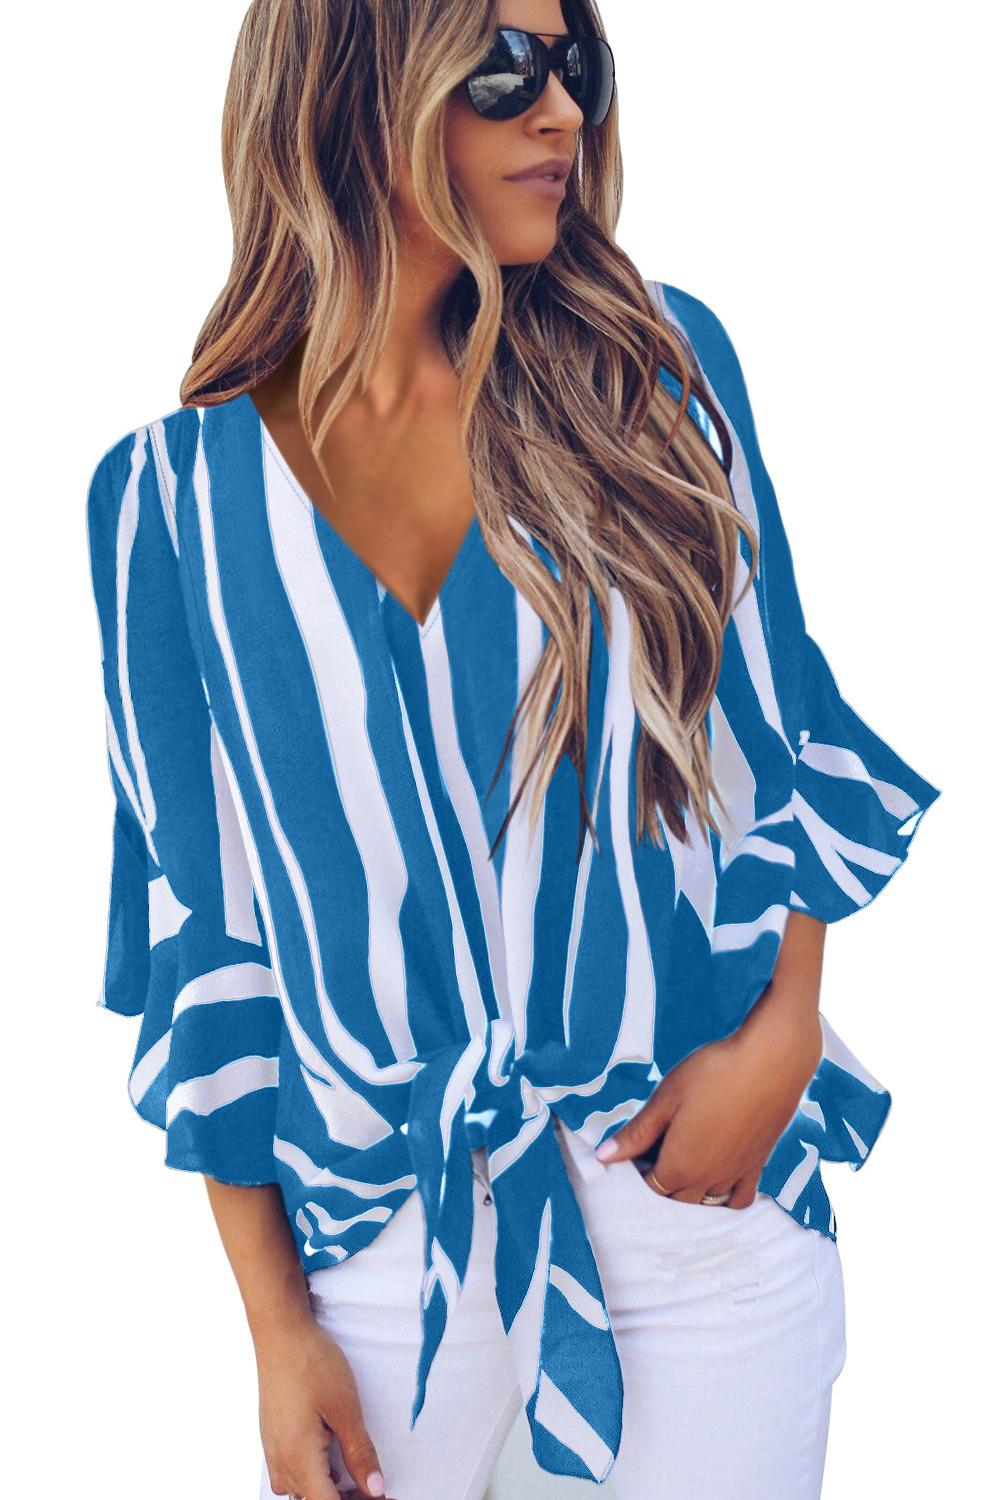 Sky Blue Vertical Stripes V Neck 3/4 Sleeve Blouse